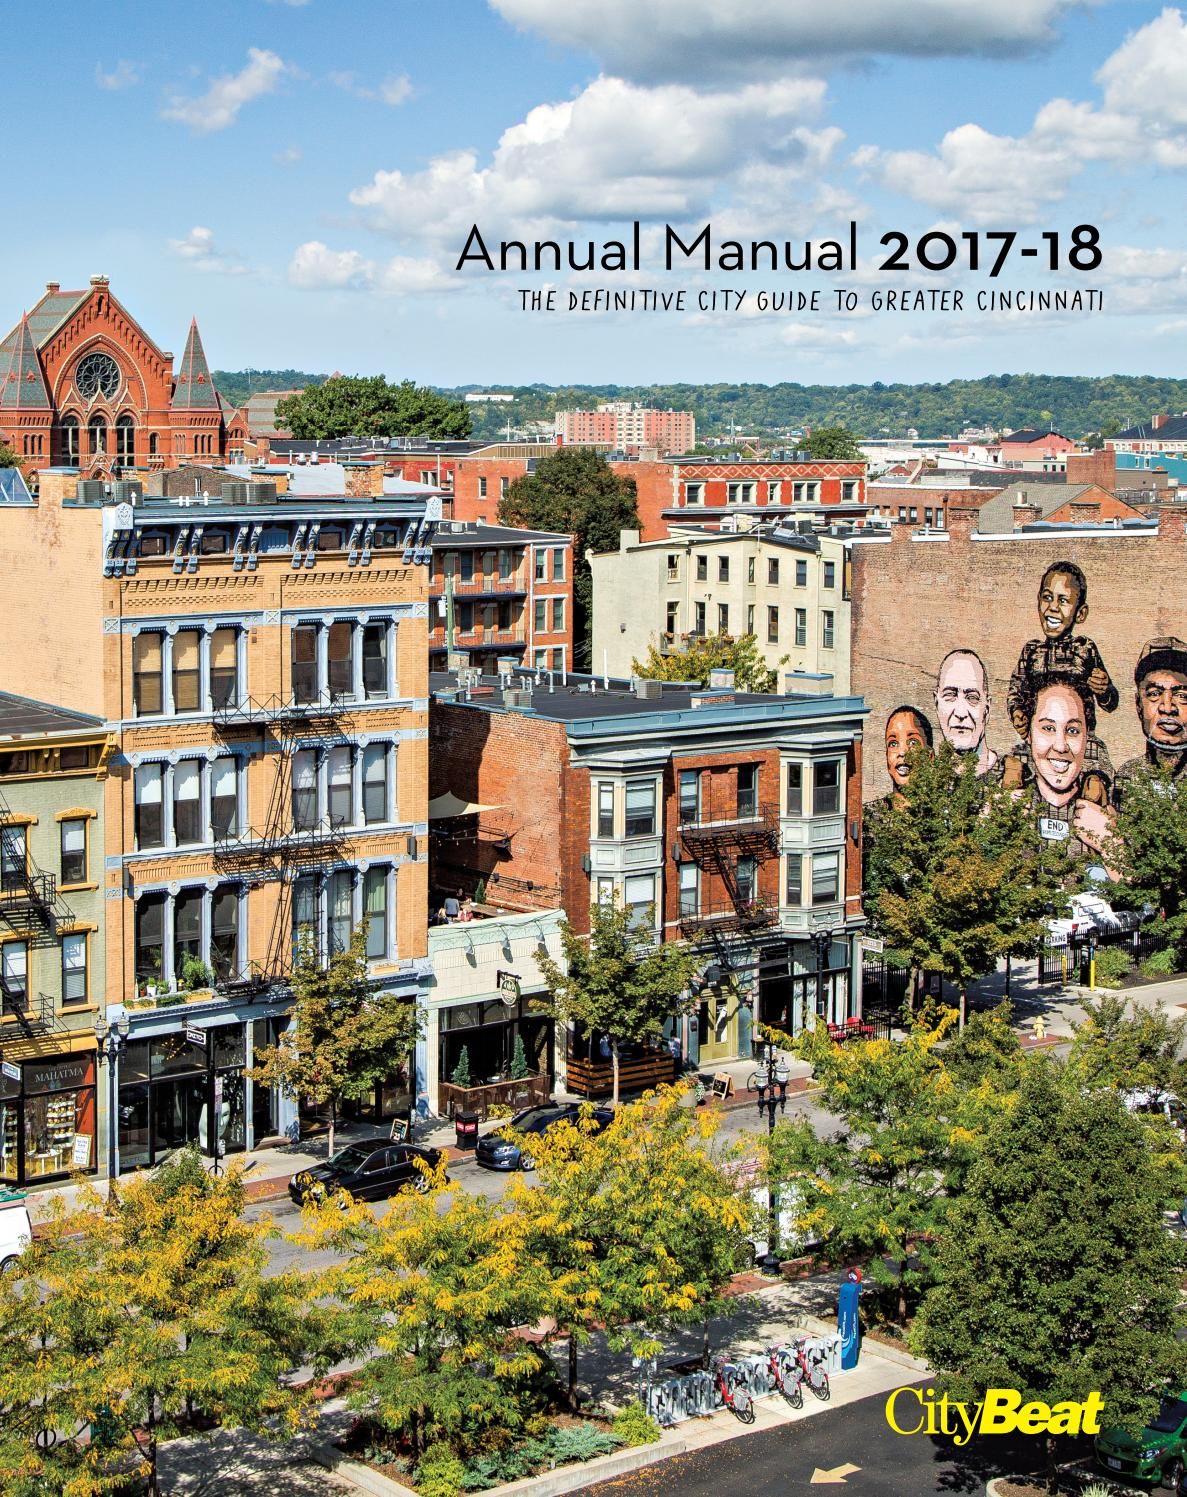 Annual Manual 2017 18 By Cincinnati Citybeat Issuu Circuit Board Hedgehog Glass Sculpture Flyingcheesetoastie 3000